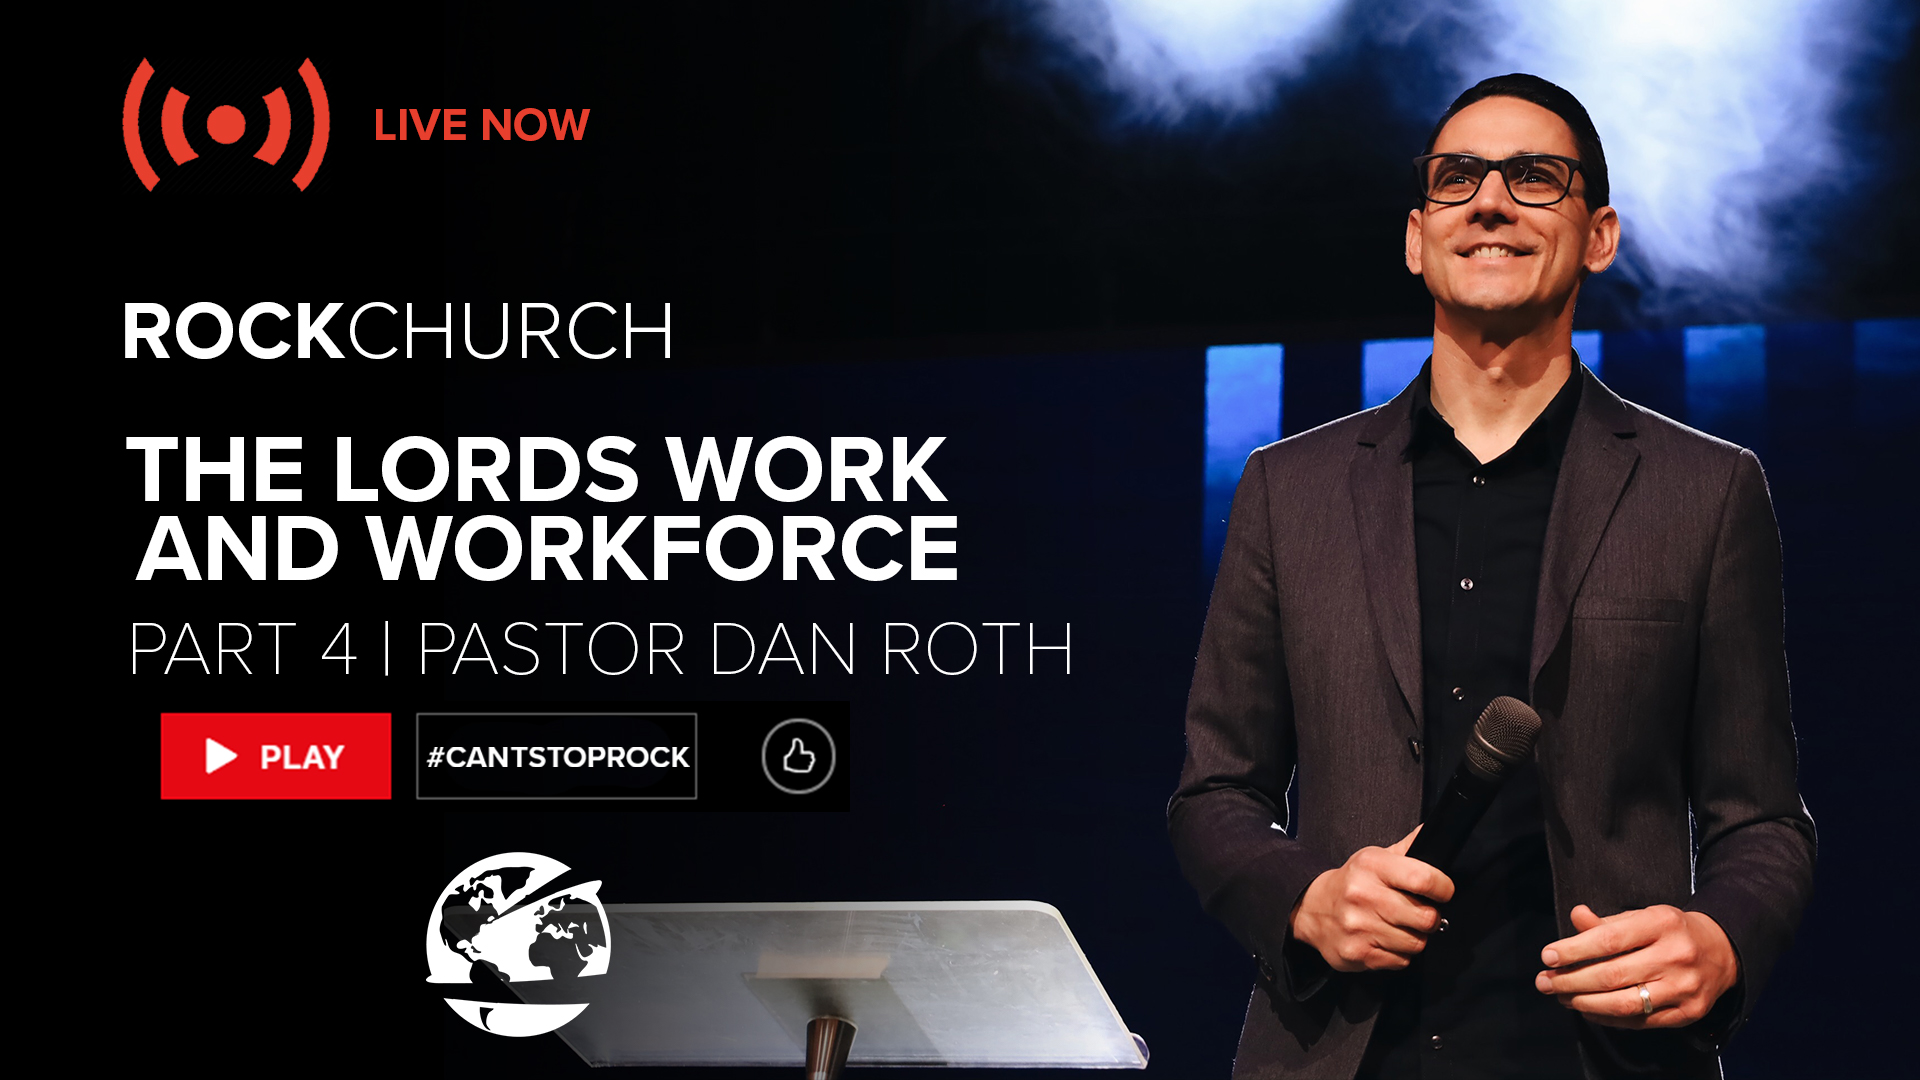 Watch The Lord's Work and Workforce Part 4